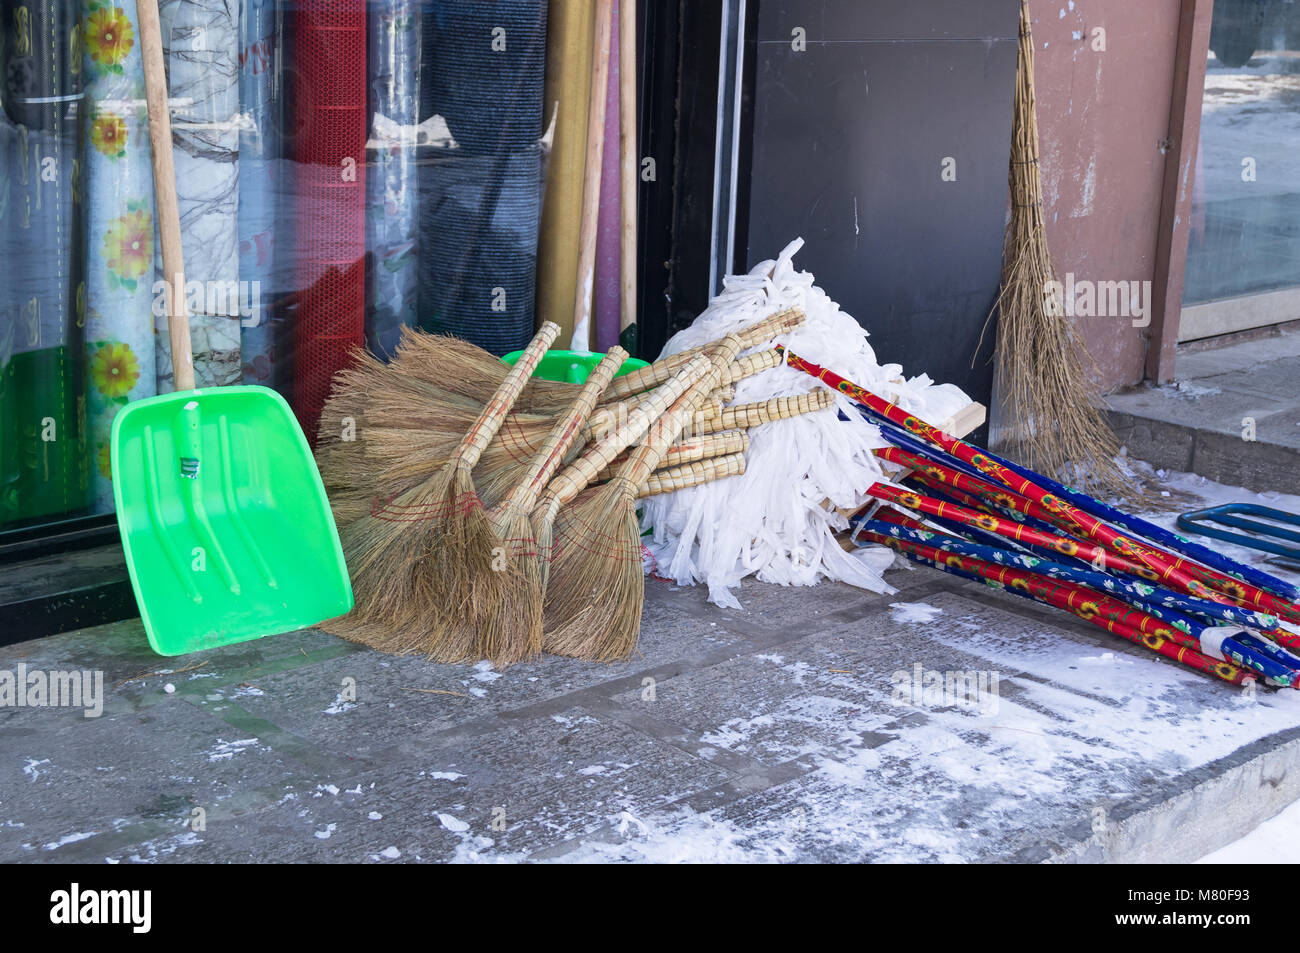 Brooms for mop shovels in the market - Stock Image